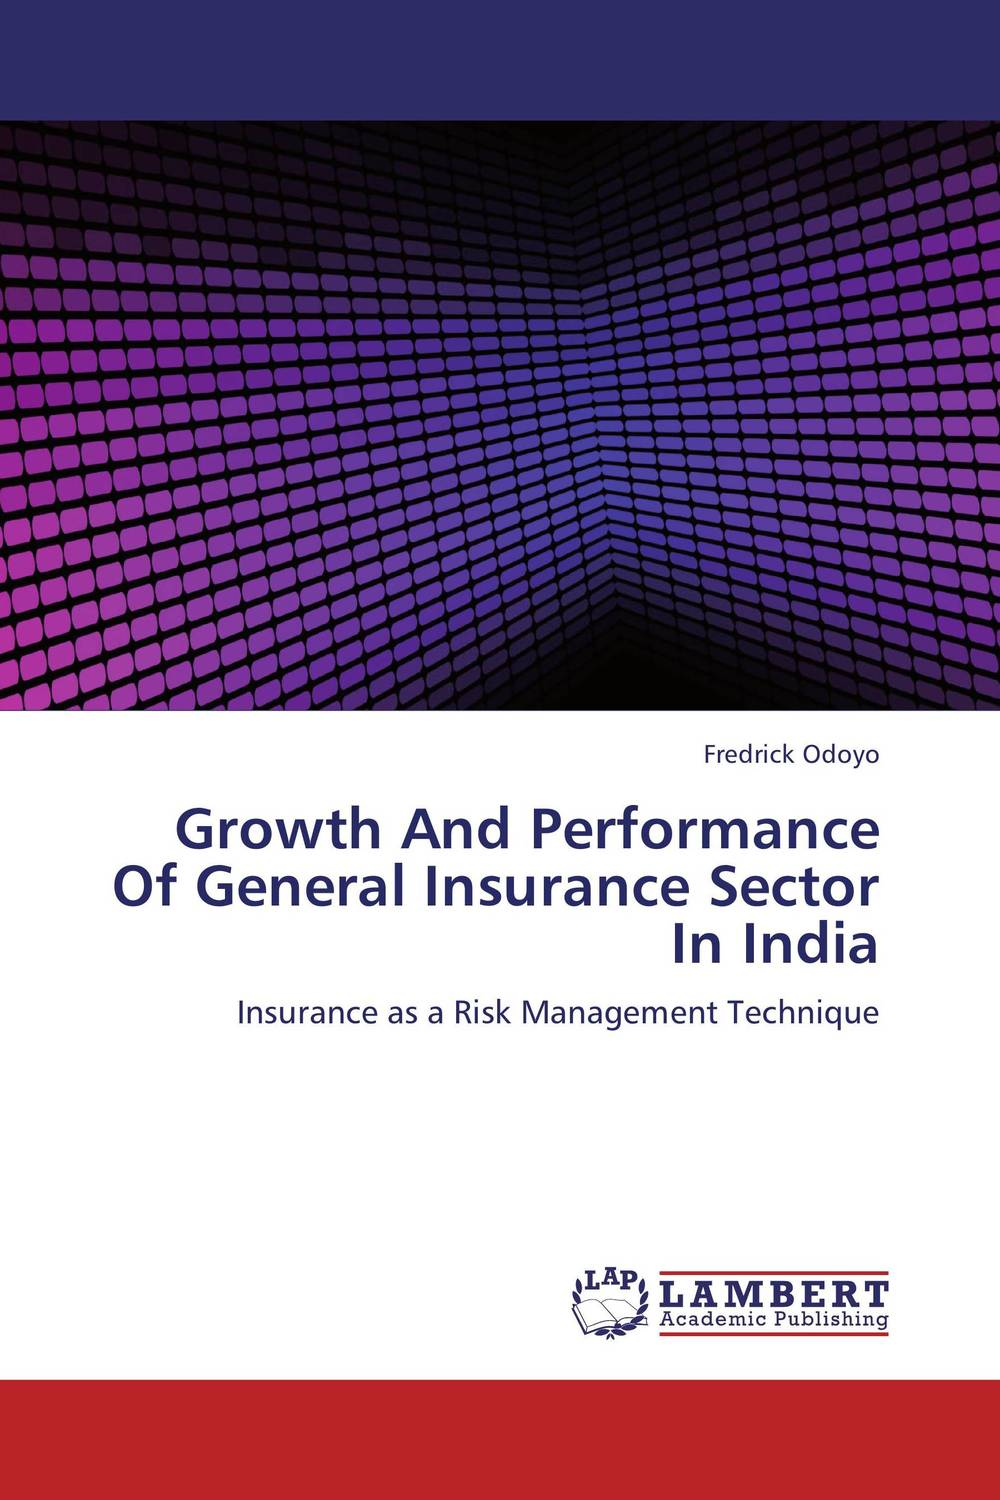 Growth And Performance Of General Insurance Sector In India financial performance analysis of general insurance companies in india